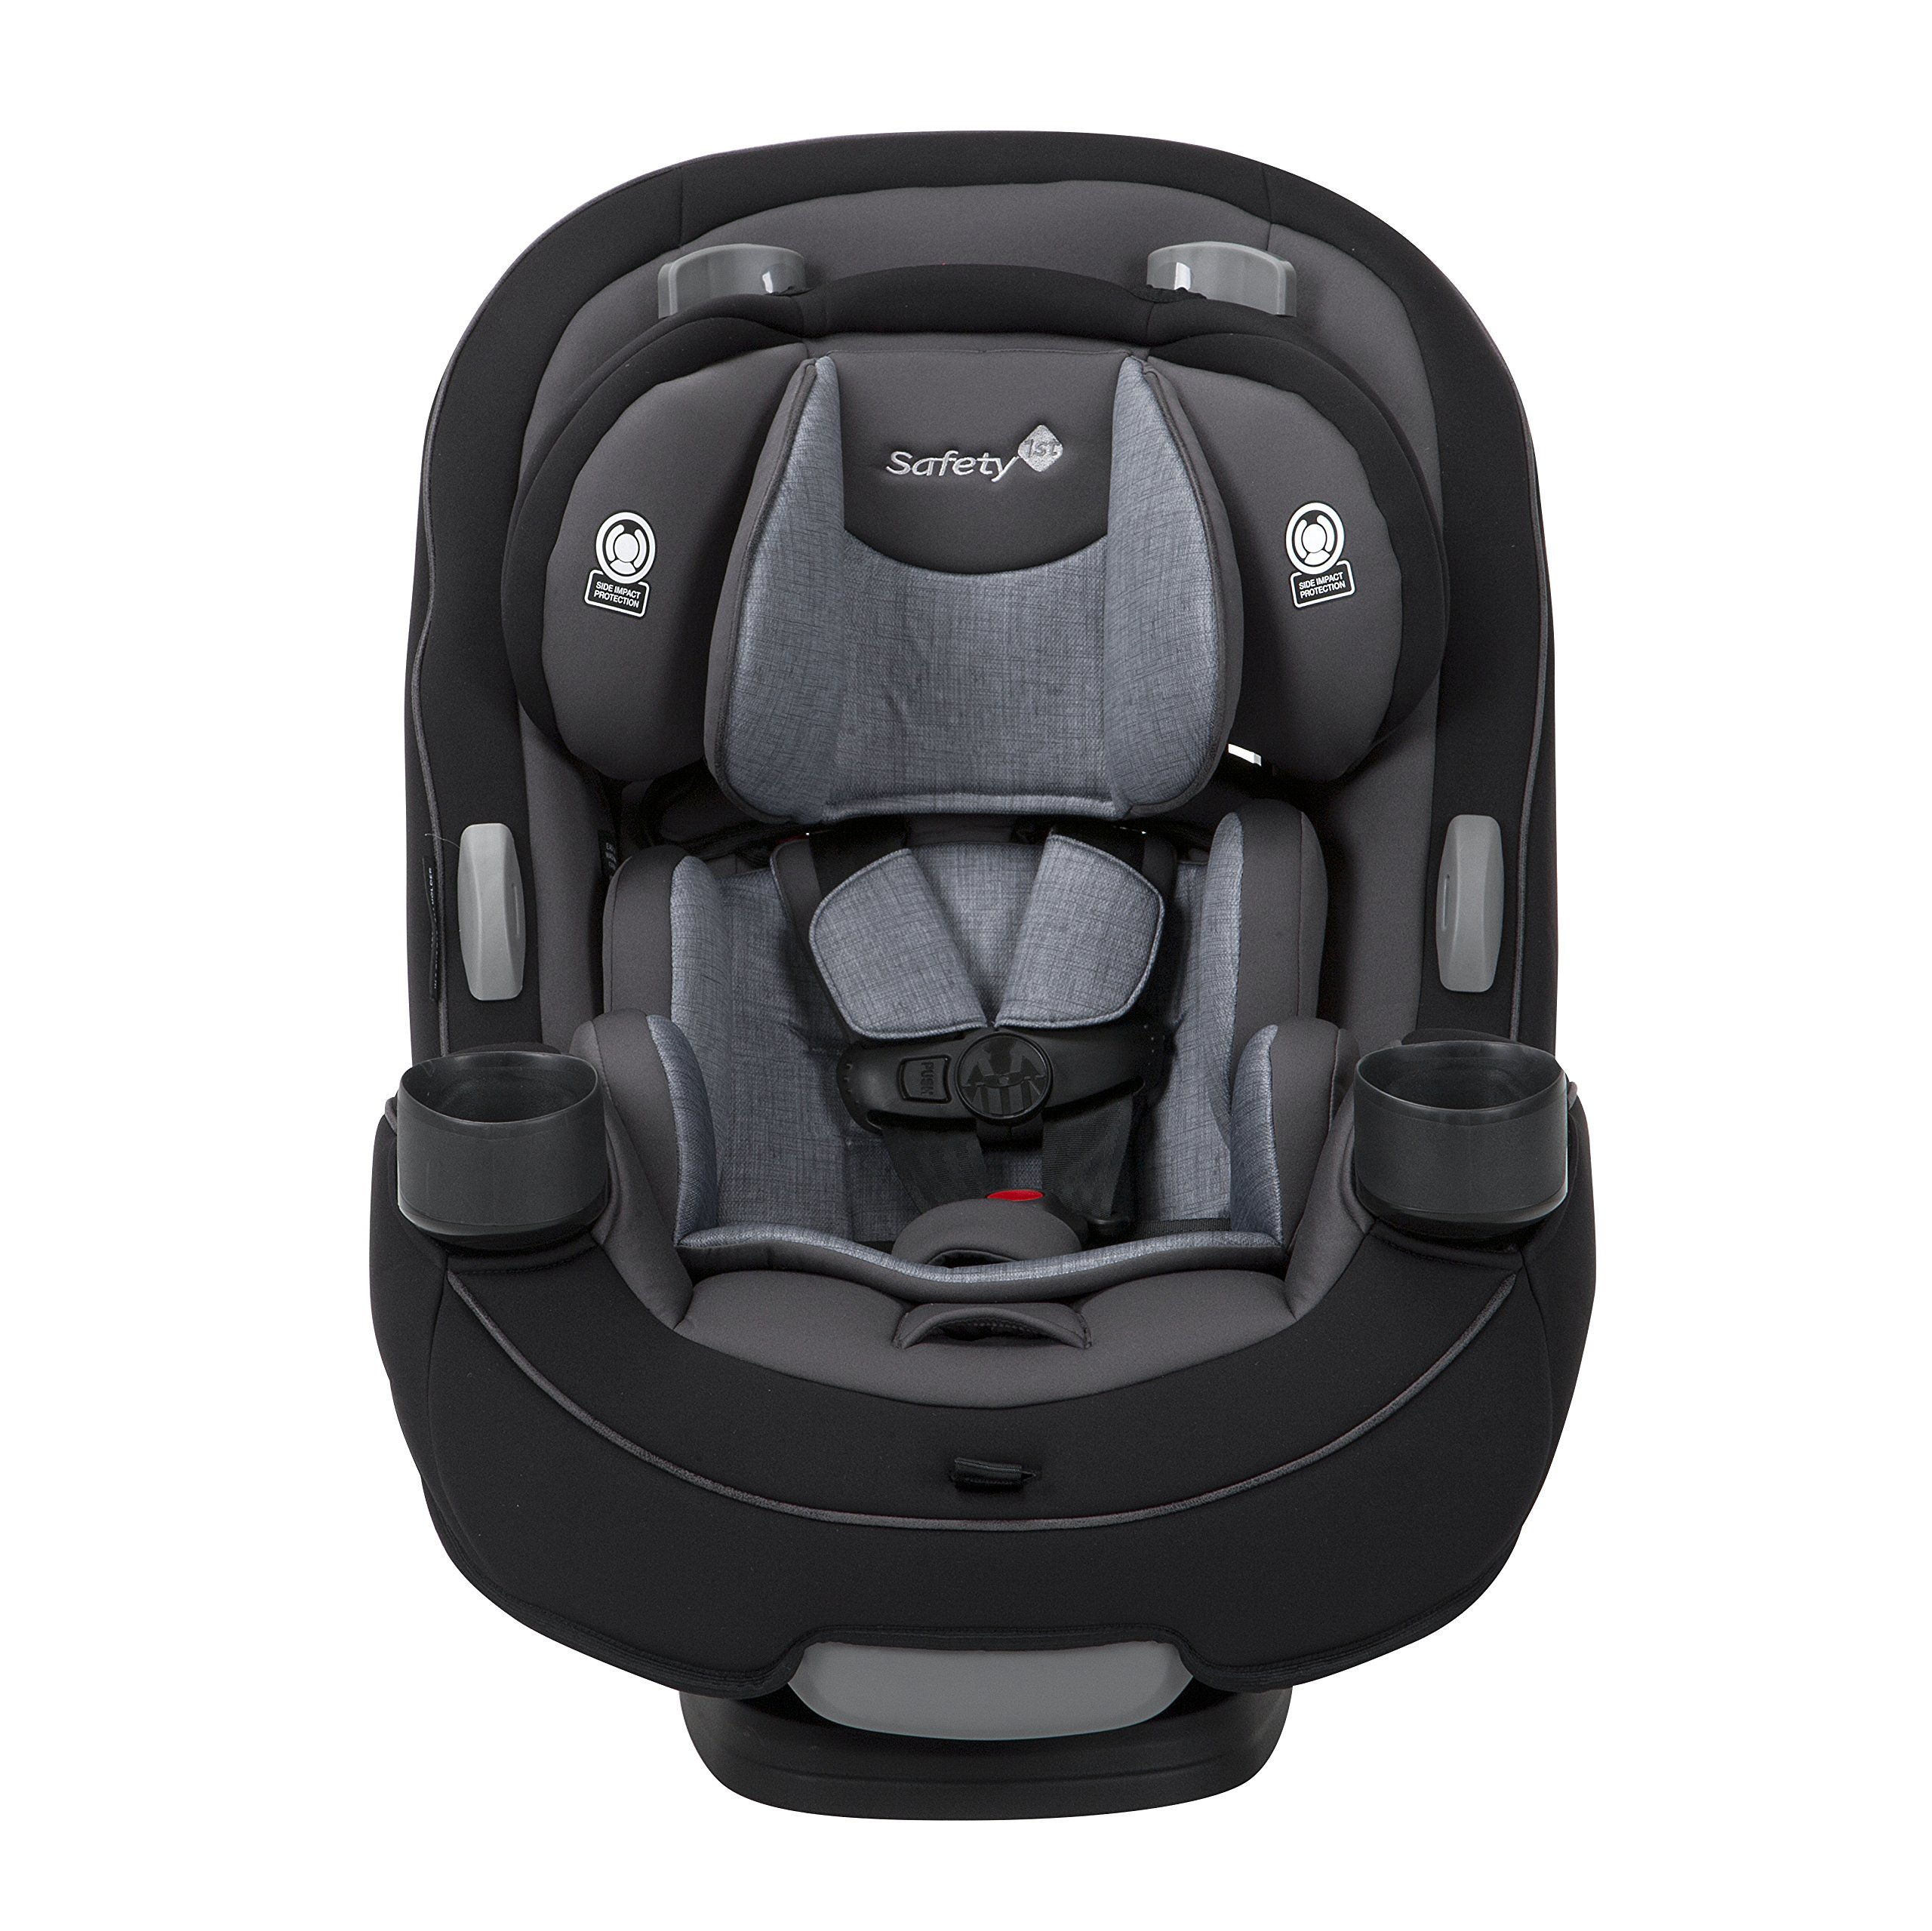 Safety 1st Grow and Go 3-in-1 Convertible Car Seat, Harvest Moon by Safety 1st (Image #9)